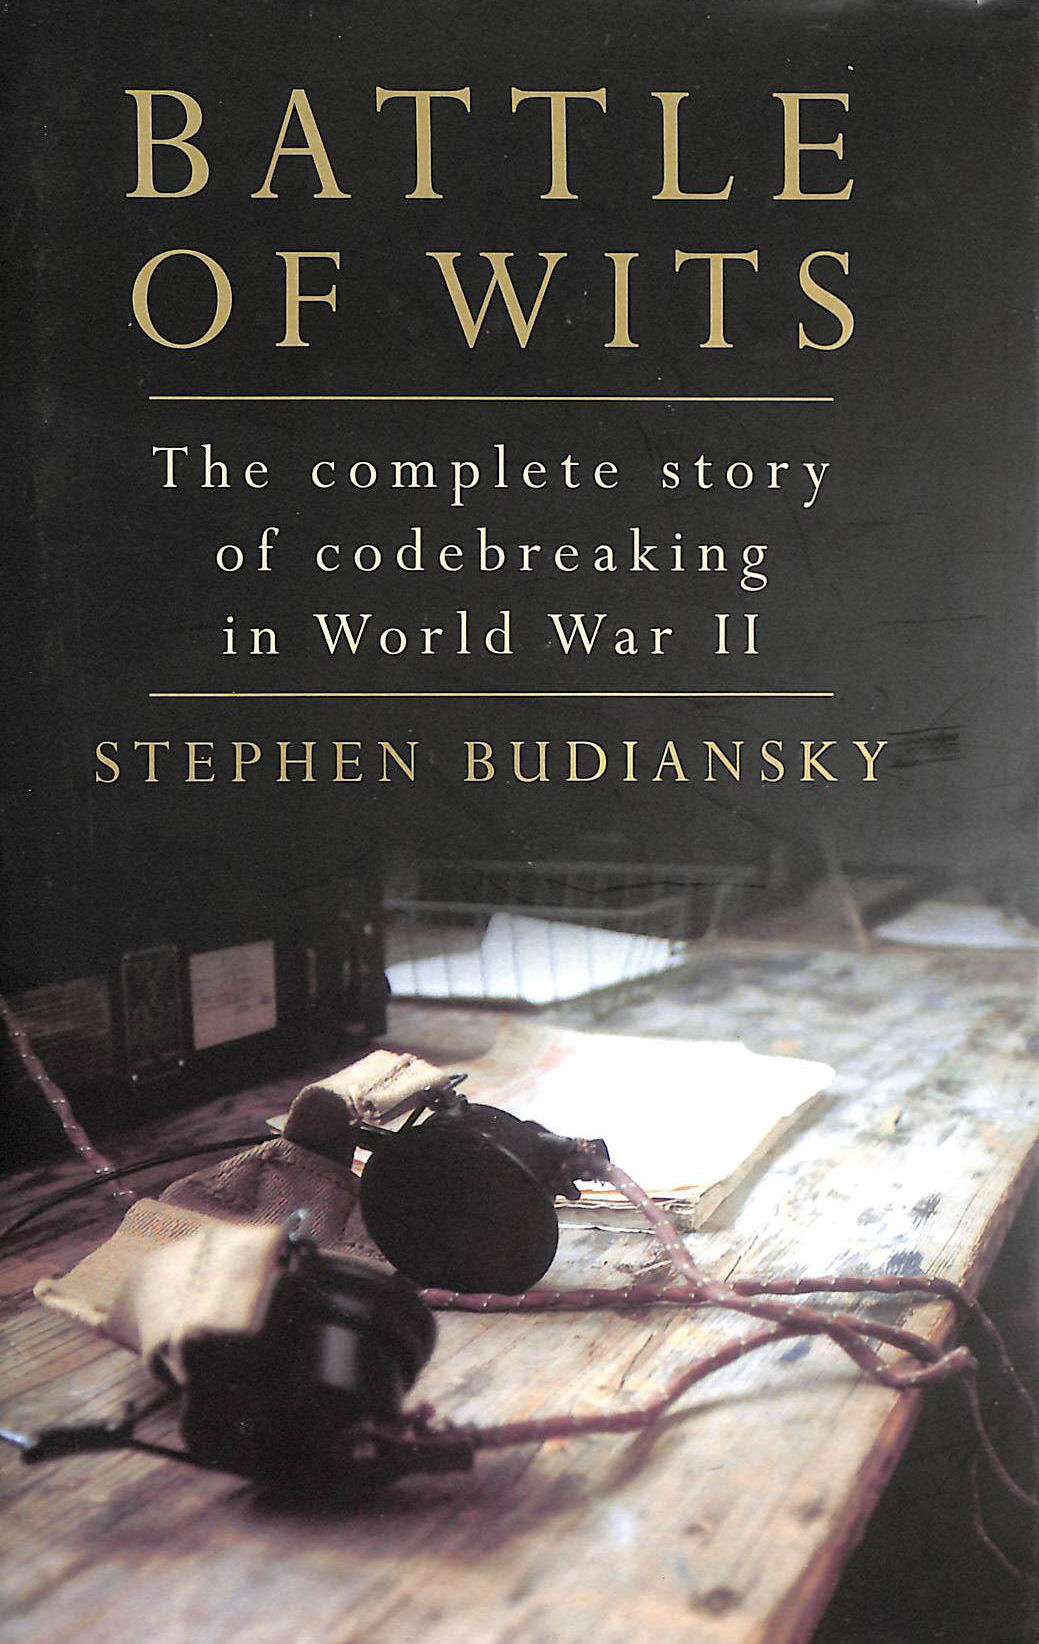 Image for Battle of Wits: The Complete Story of Codebreaking in World War II